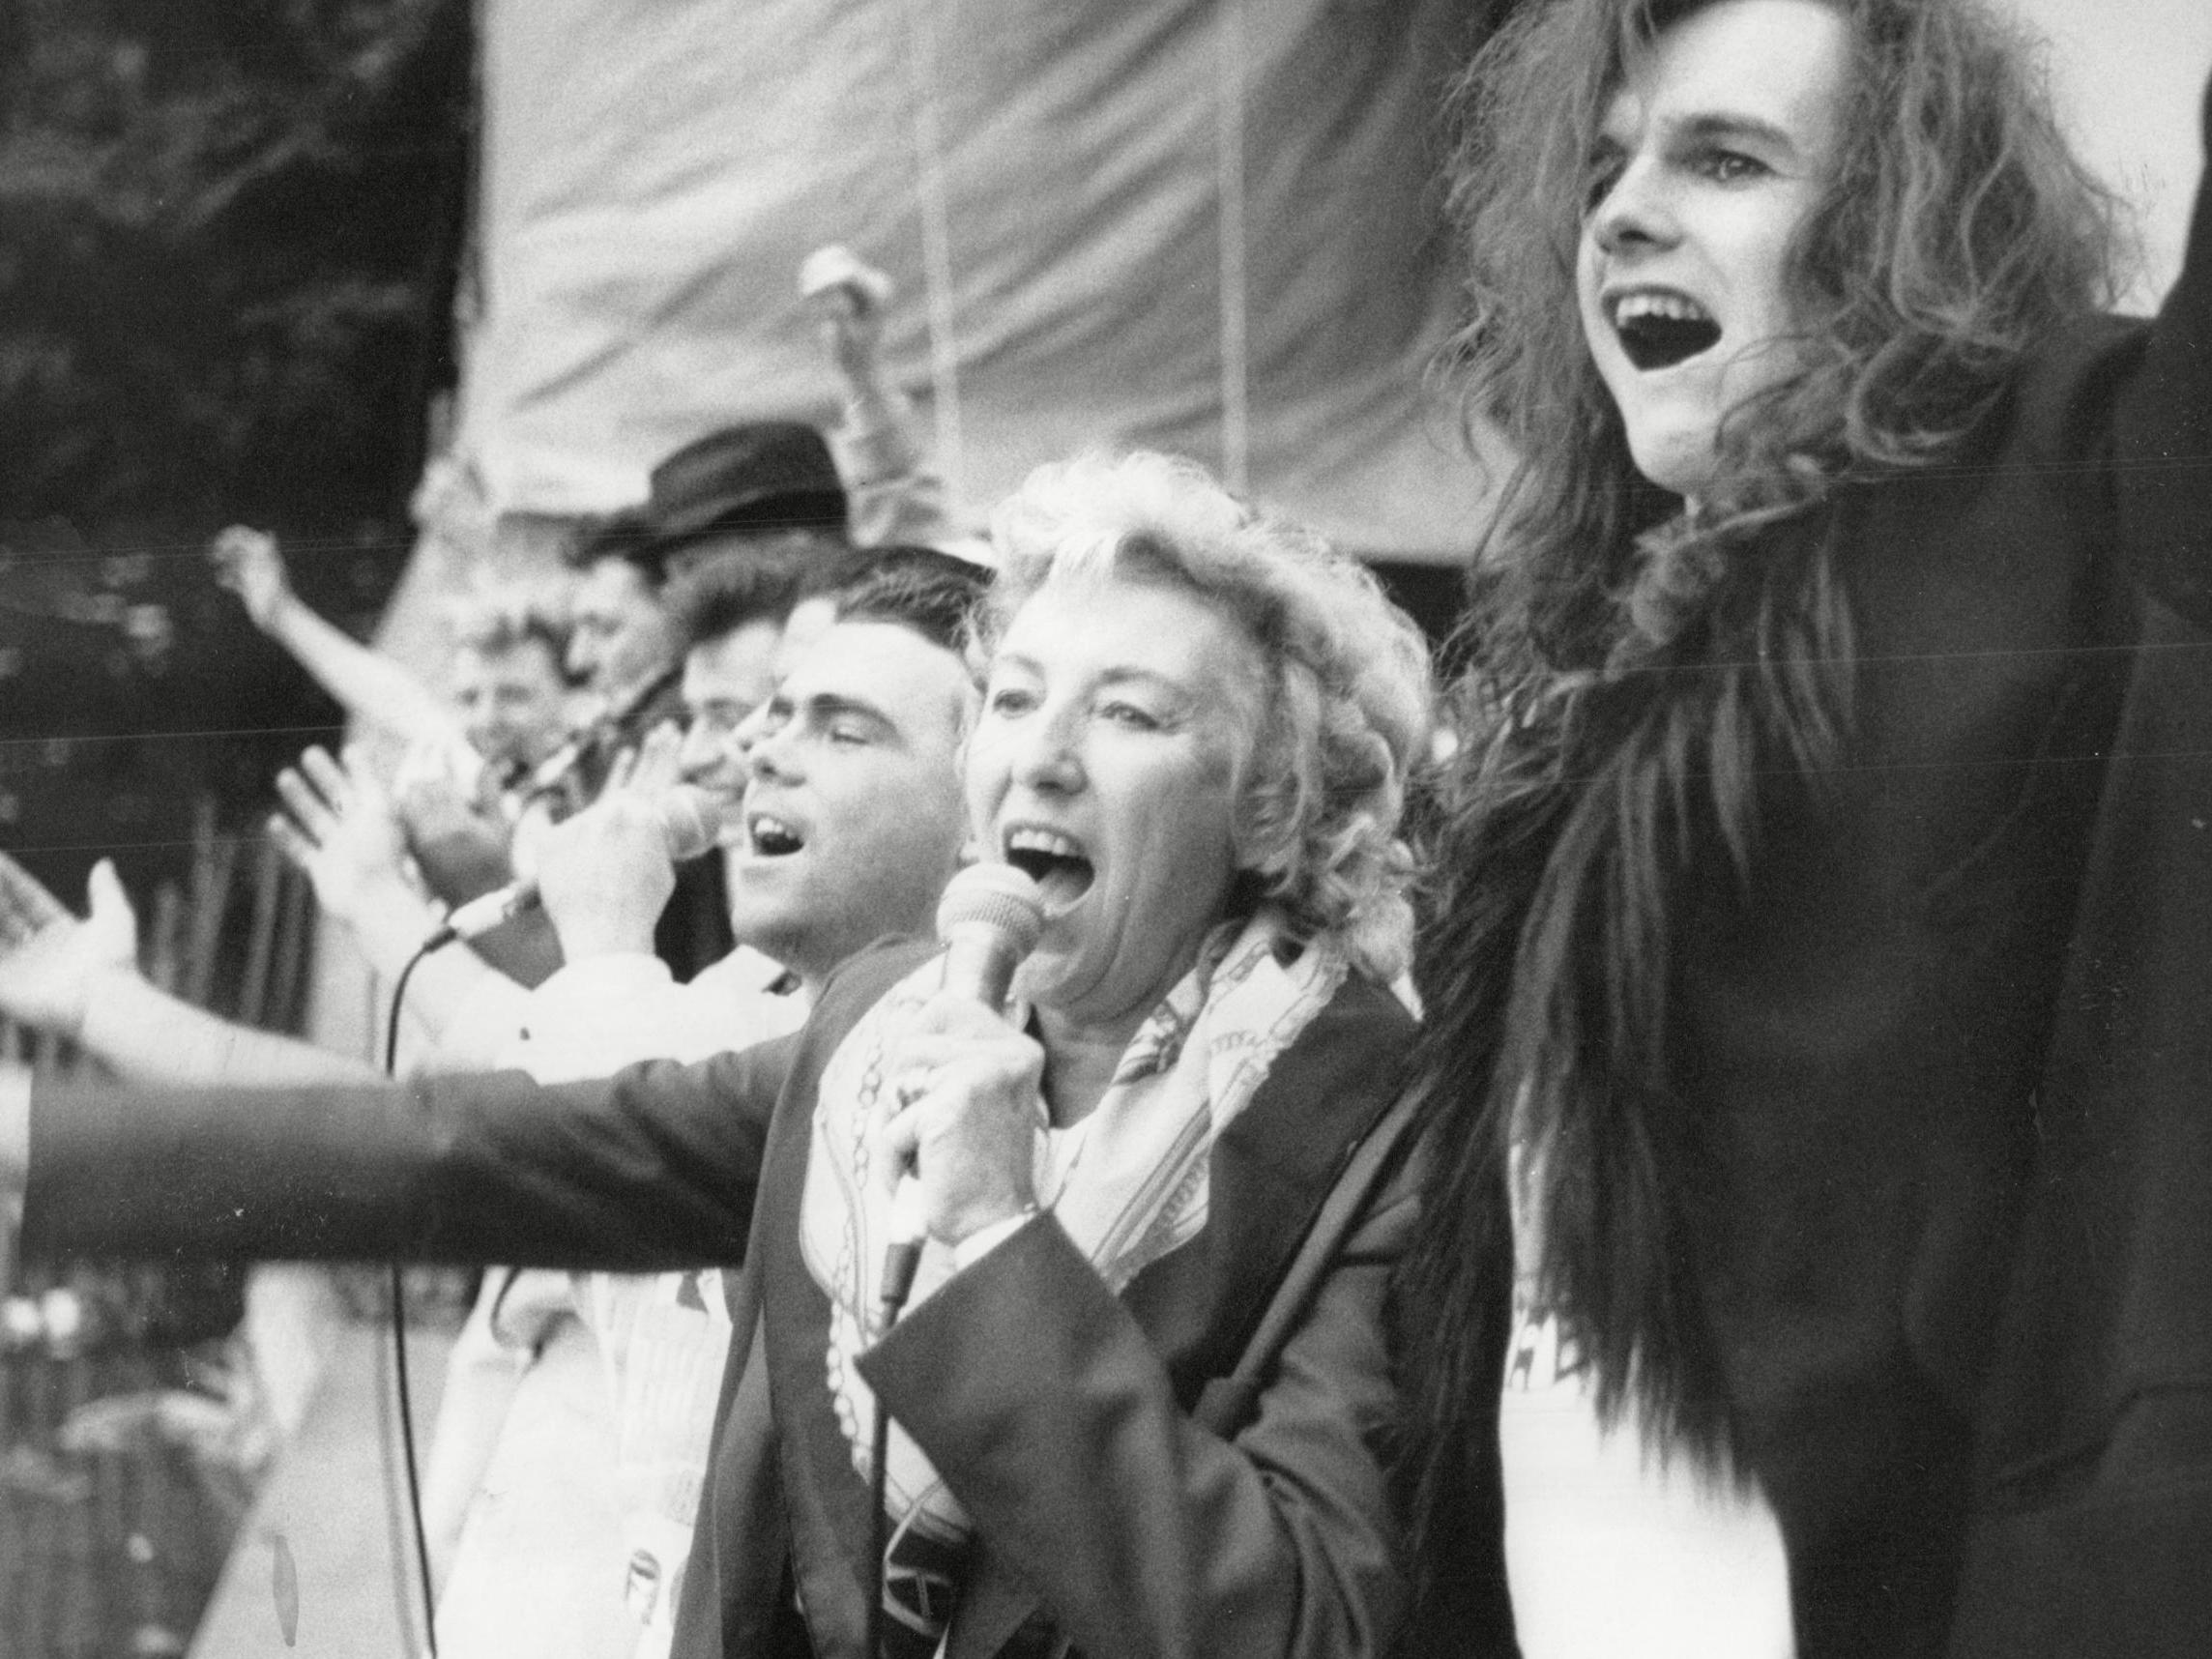 Dame Vera Lynn once performed with Hawkwind, Lemmy and topless dancers at anti-heroin concert thumbnail